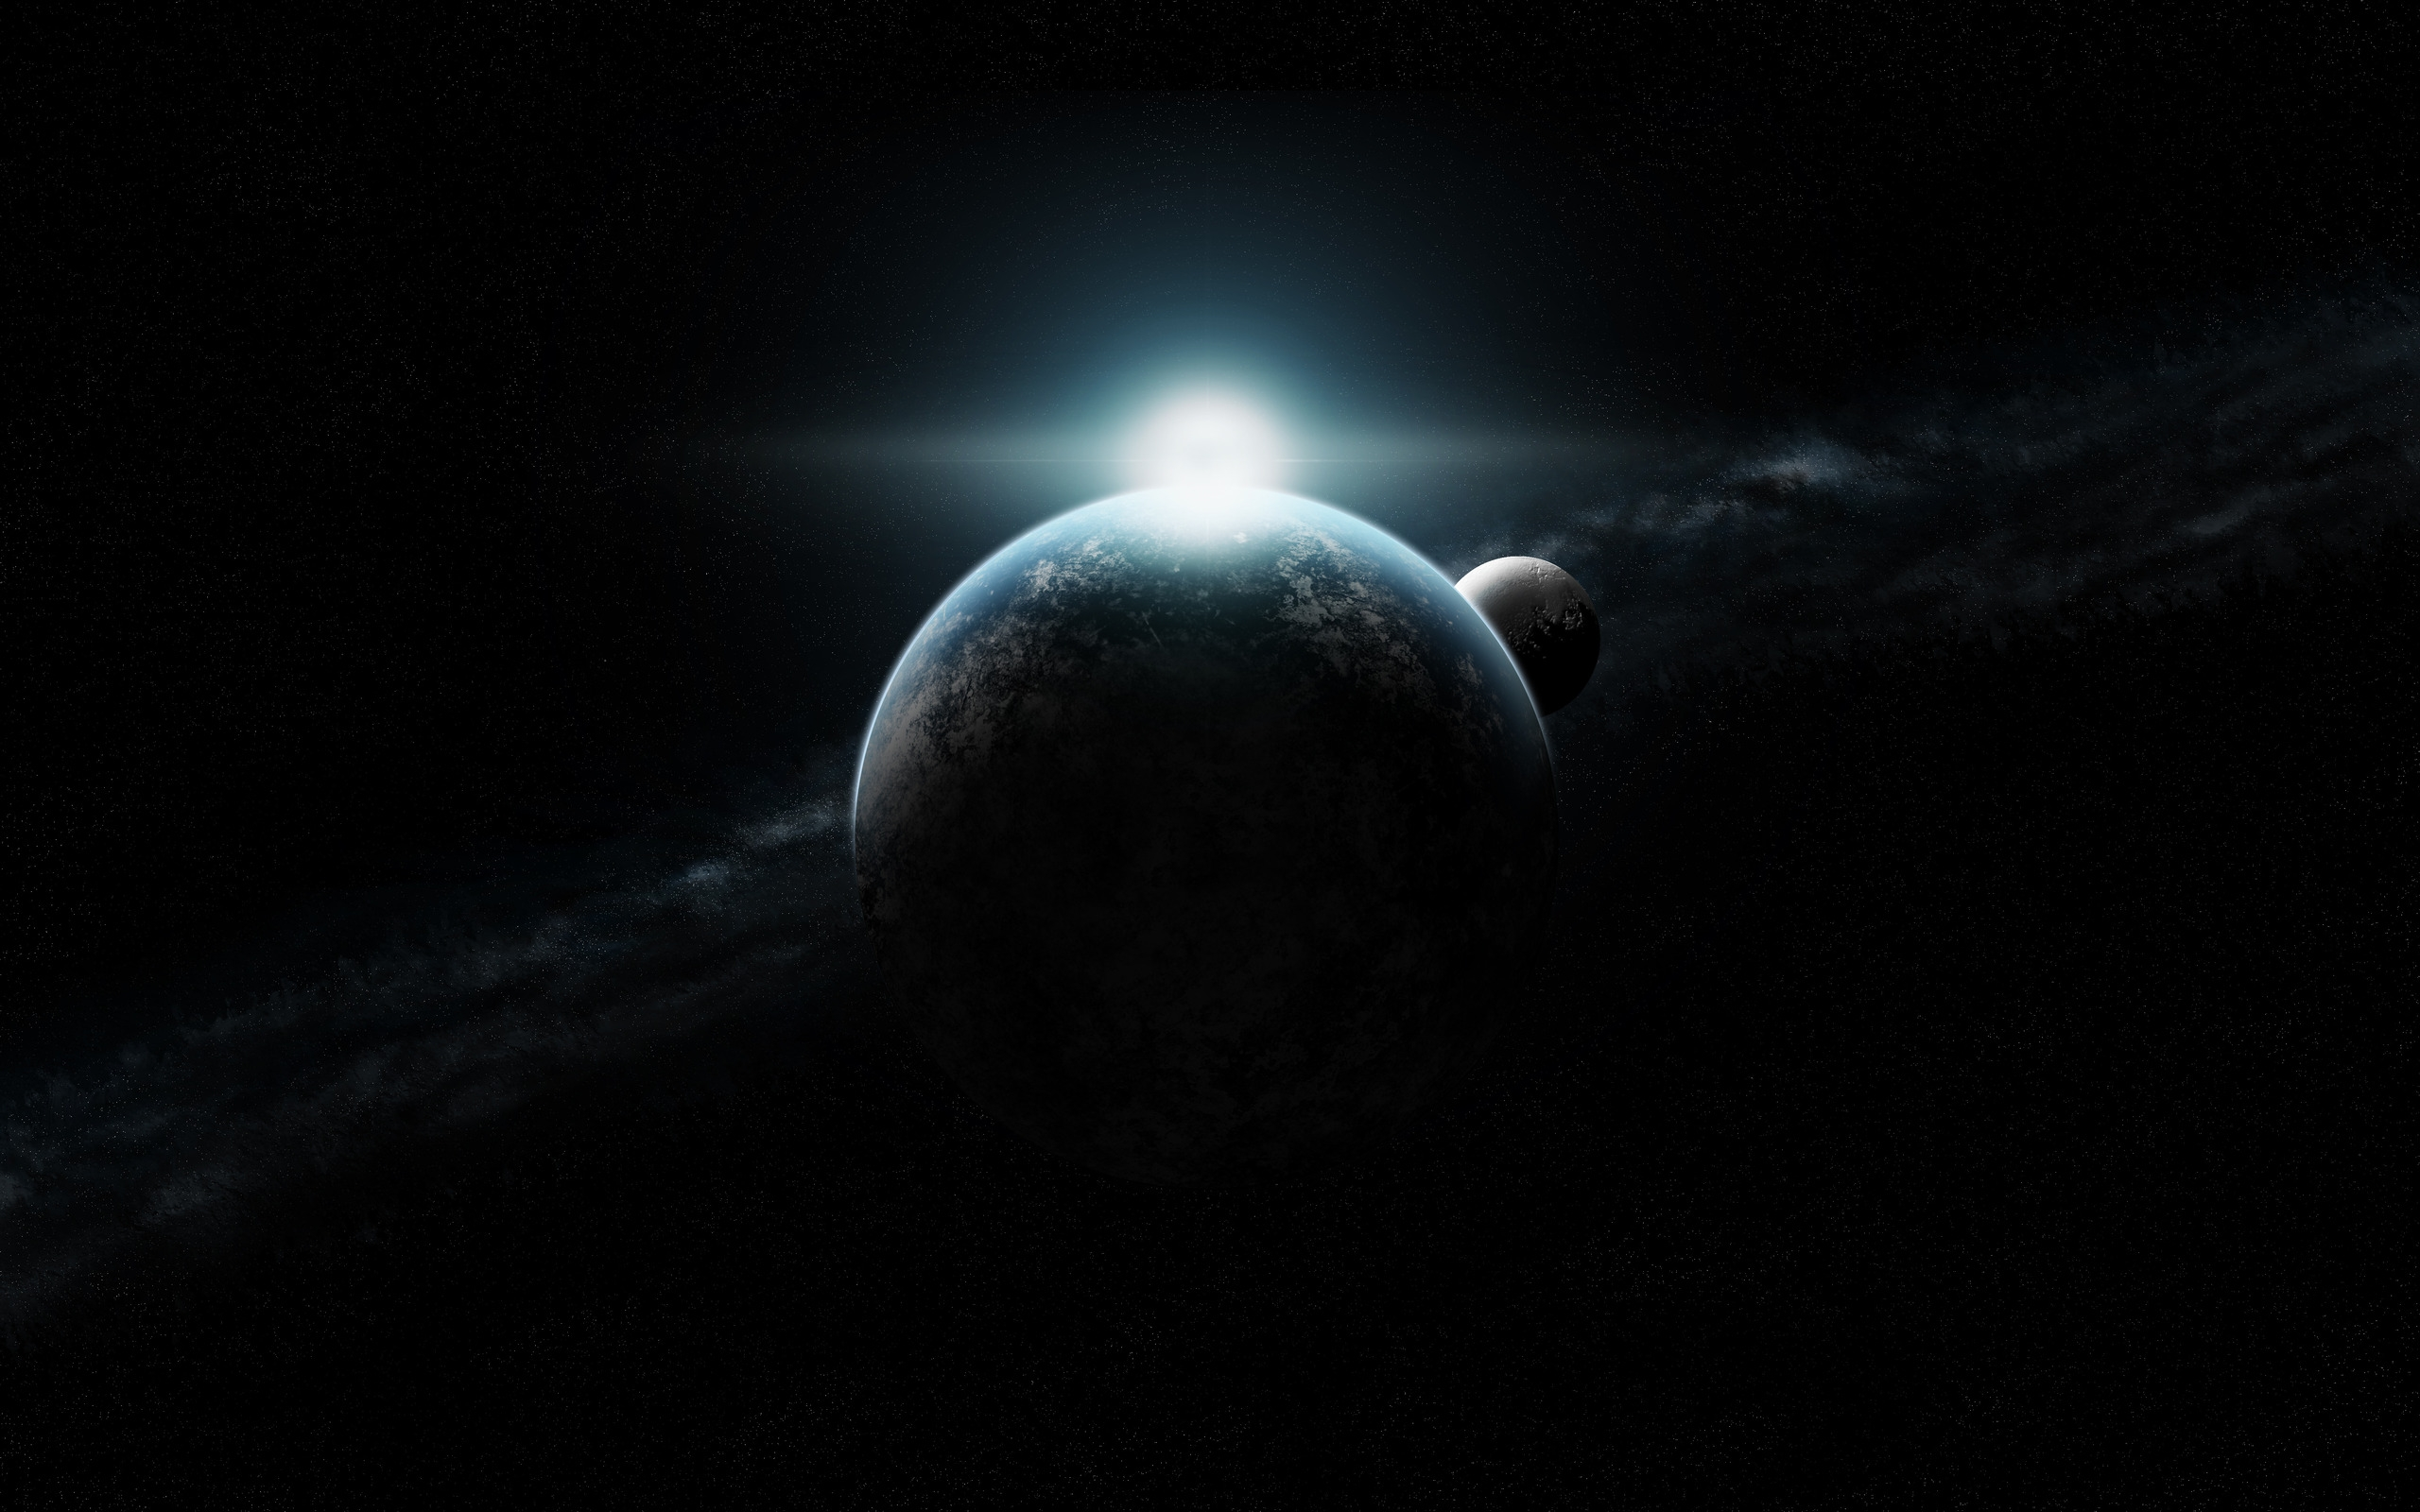 Sci Fi Planets Hd X Id 1609068 With Resolutions 2560×1600 Pixel